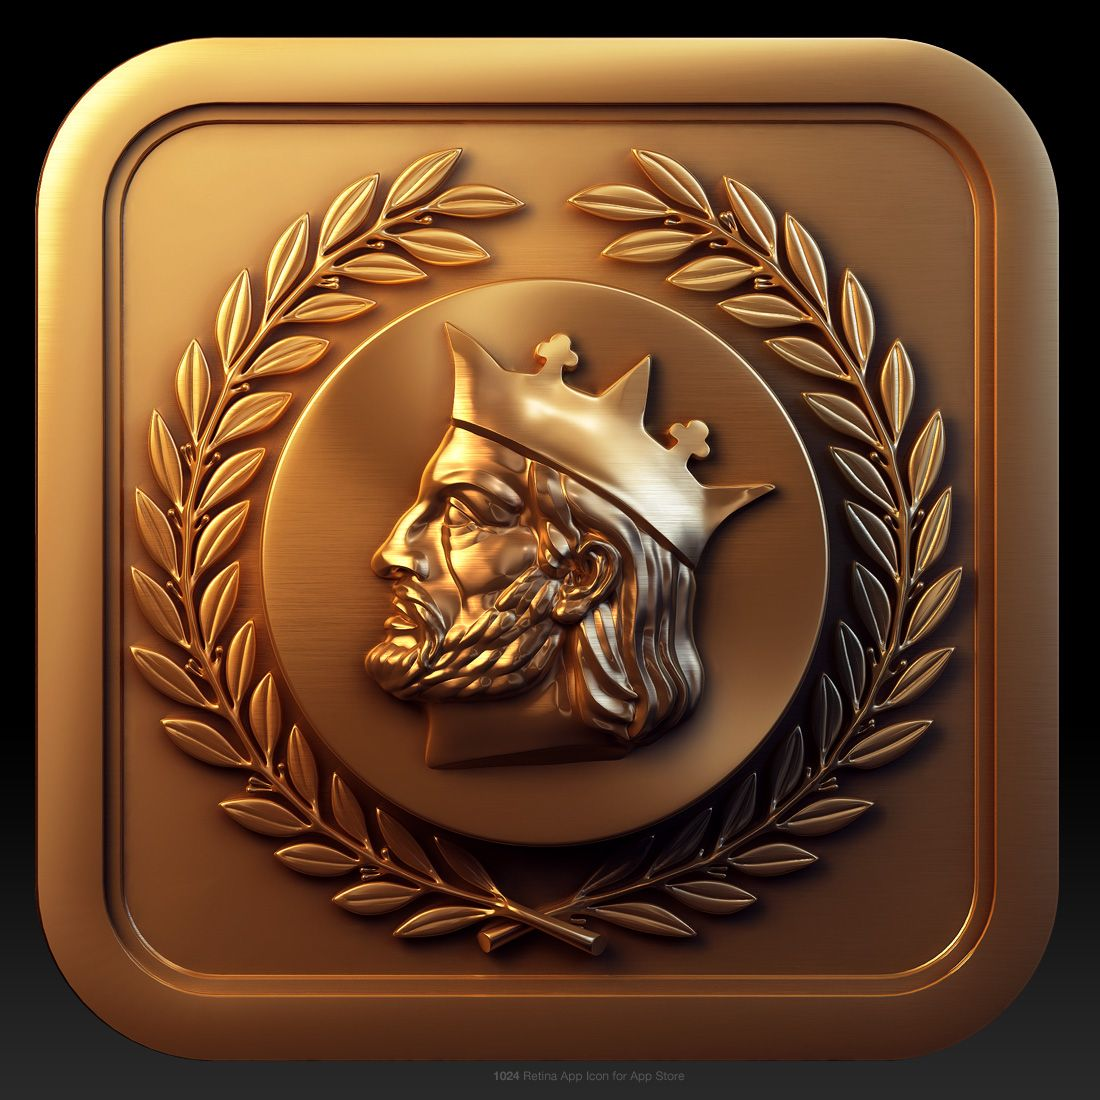 Amazing metal ios app icon for Alfonso X, a Spanish